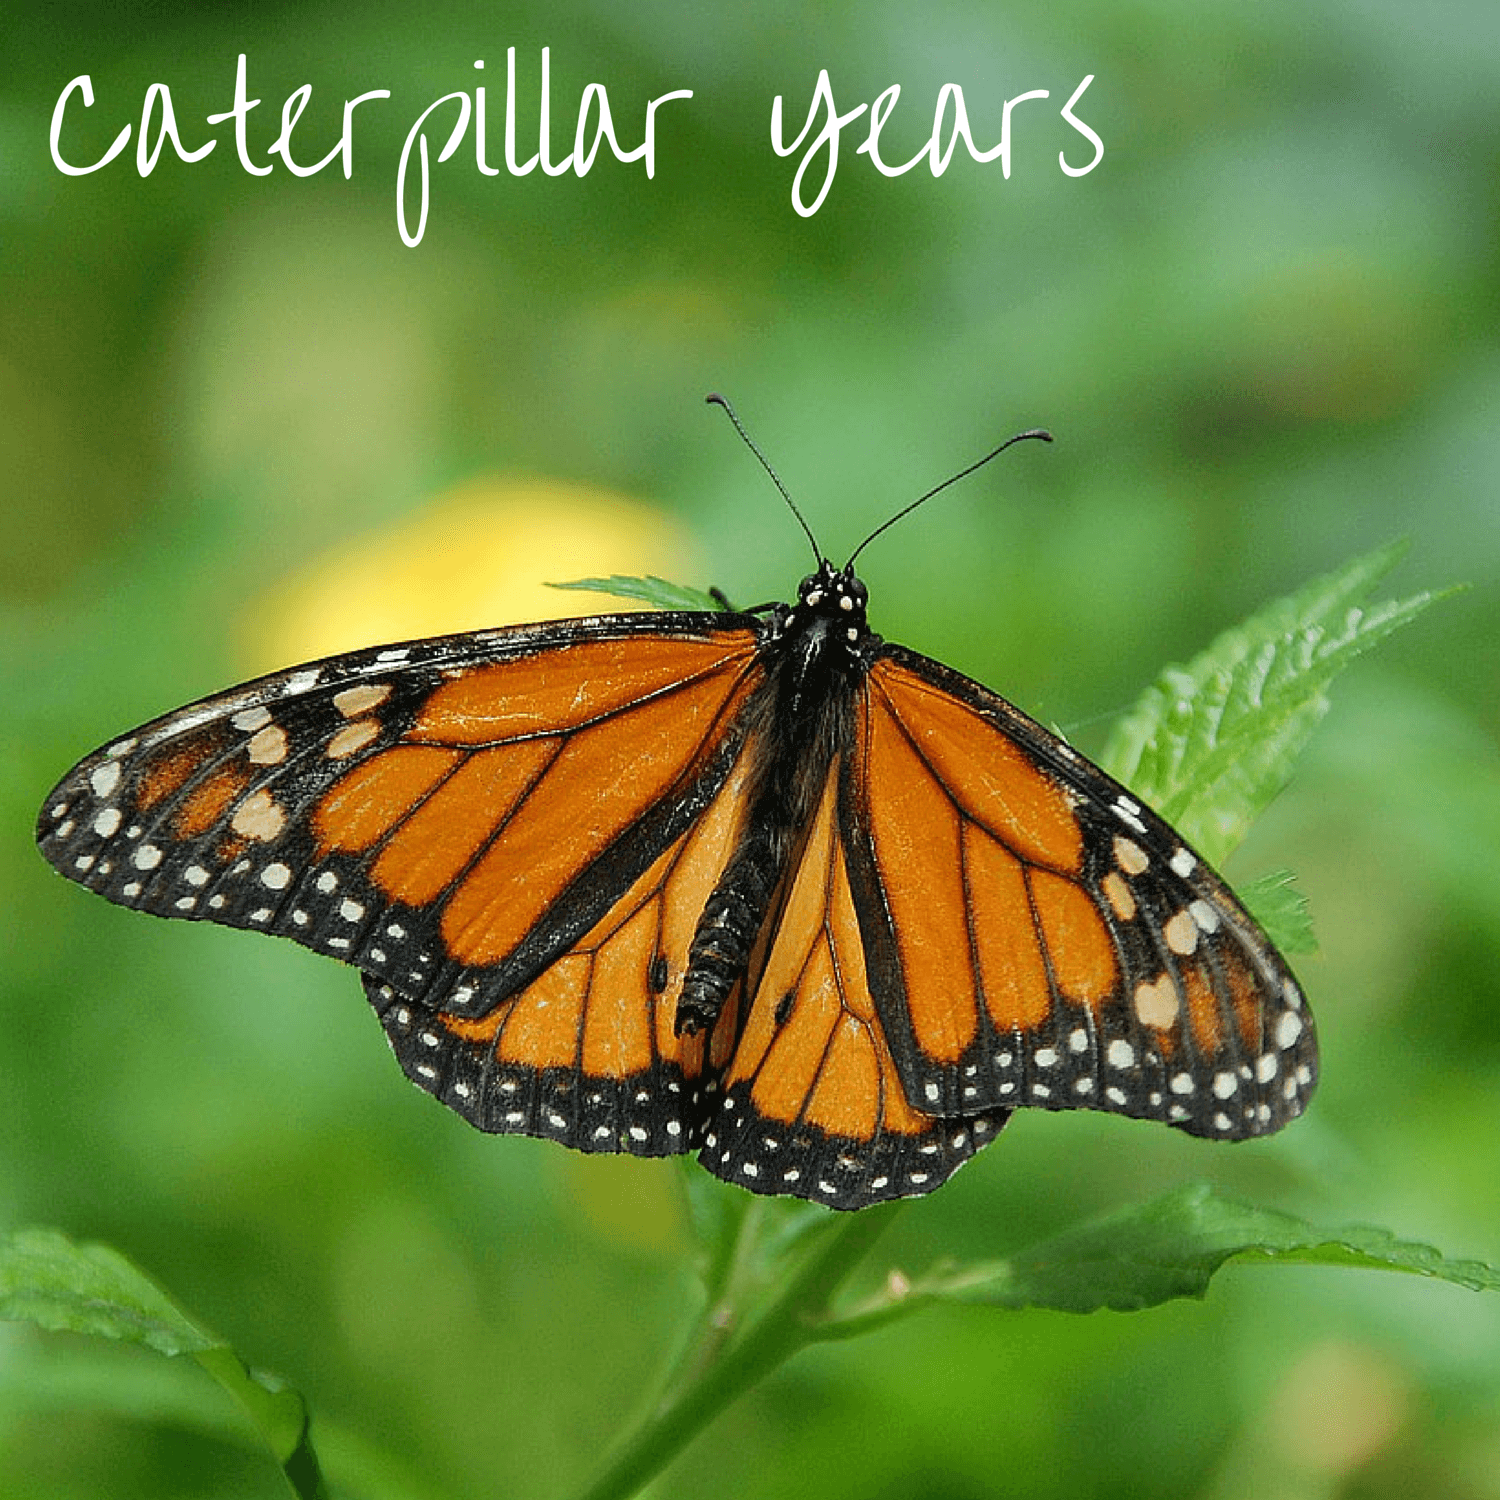 Our children grow so fast.  They are living their caterpillar years before they change and fly away. - DaytoDayAdventures.com